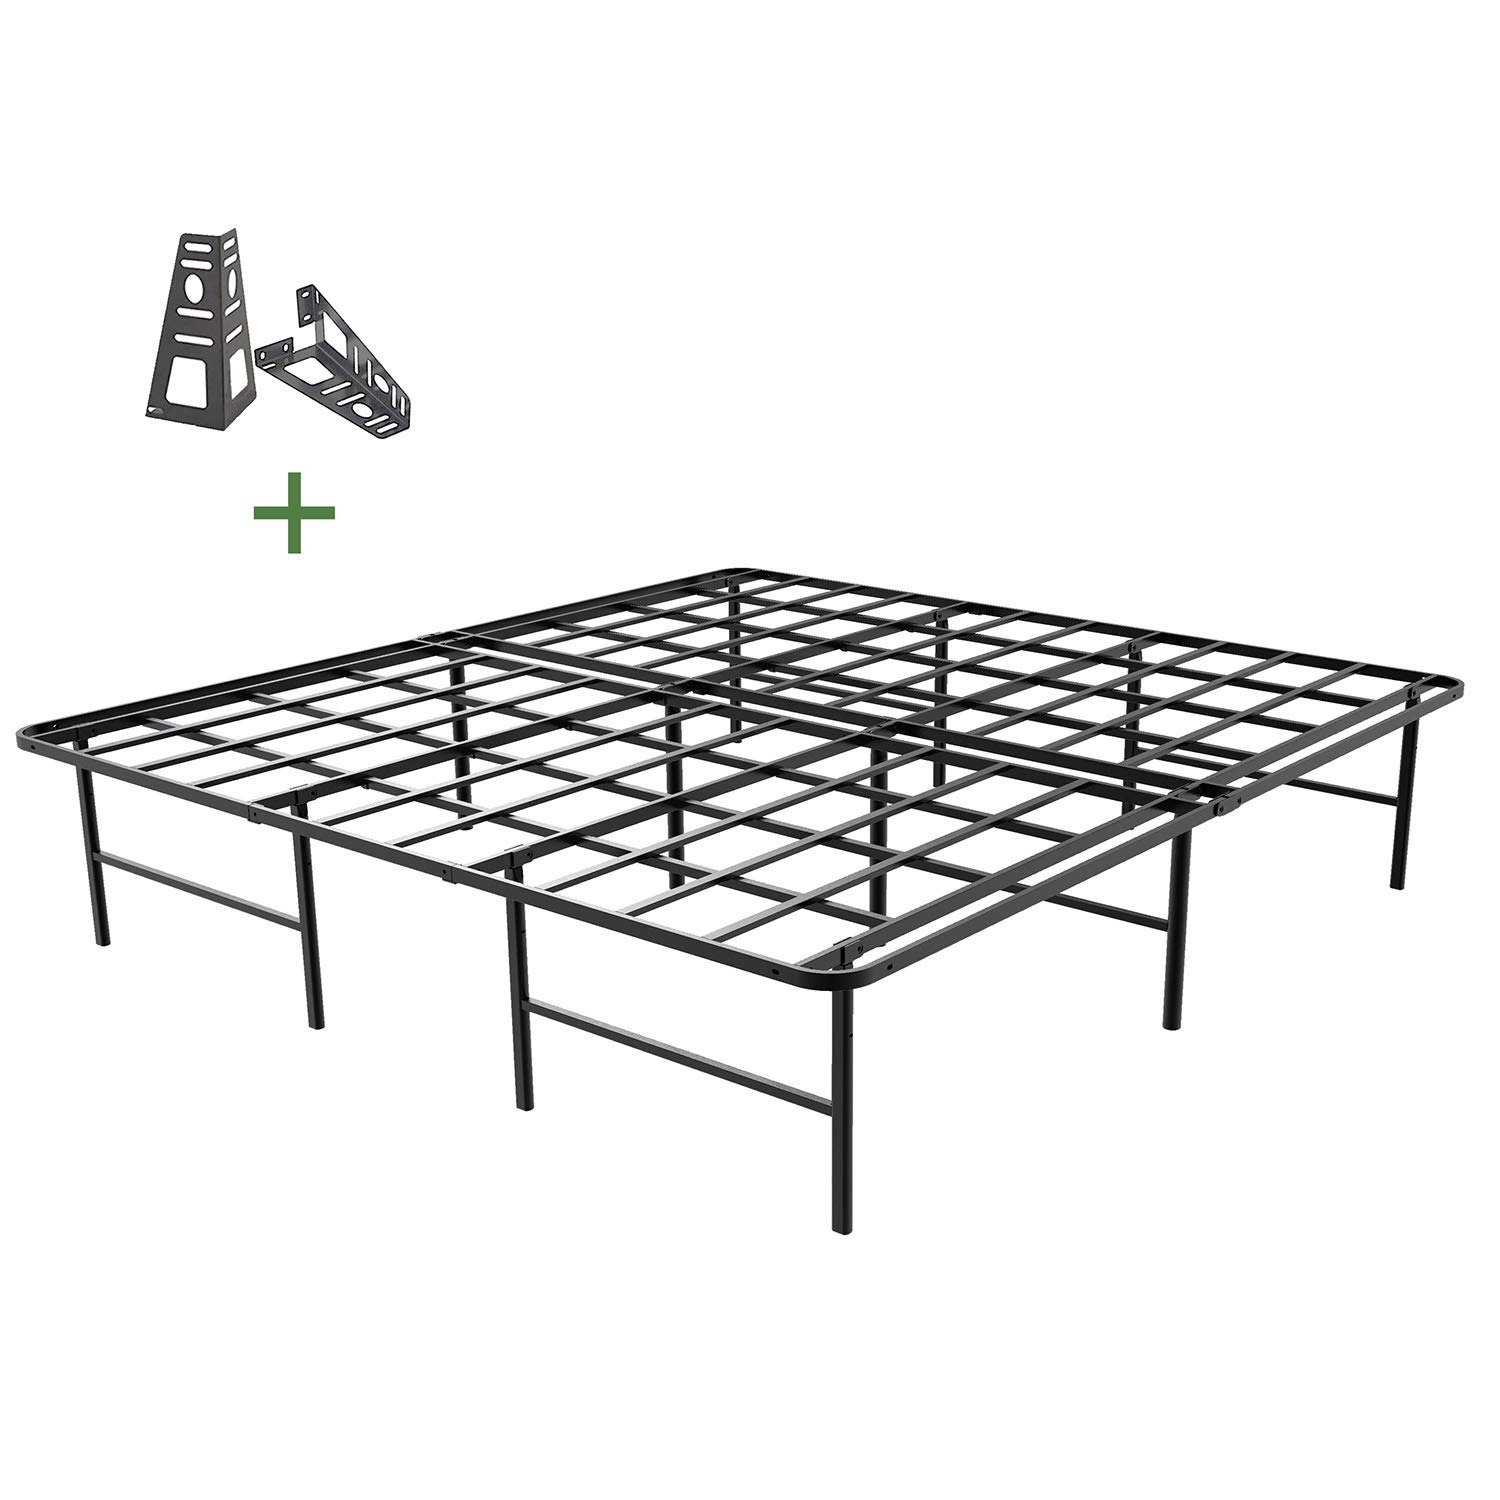 45MinST 16 Inch Platform Bed Frame 2 Brackets Included Mattress Foundation 3000LBS Heavy Duty Extremely Easy Assembly Box Spring Replacement Quiet Noise-Free, Twin XL Full Queen King Cal King King